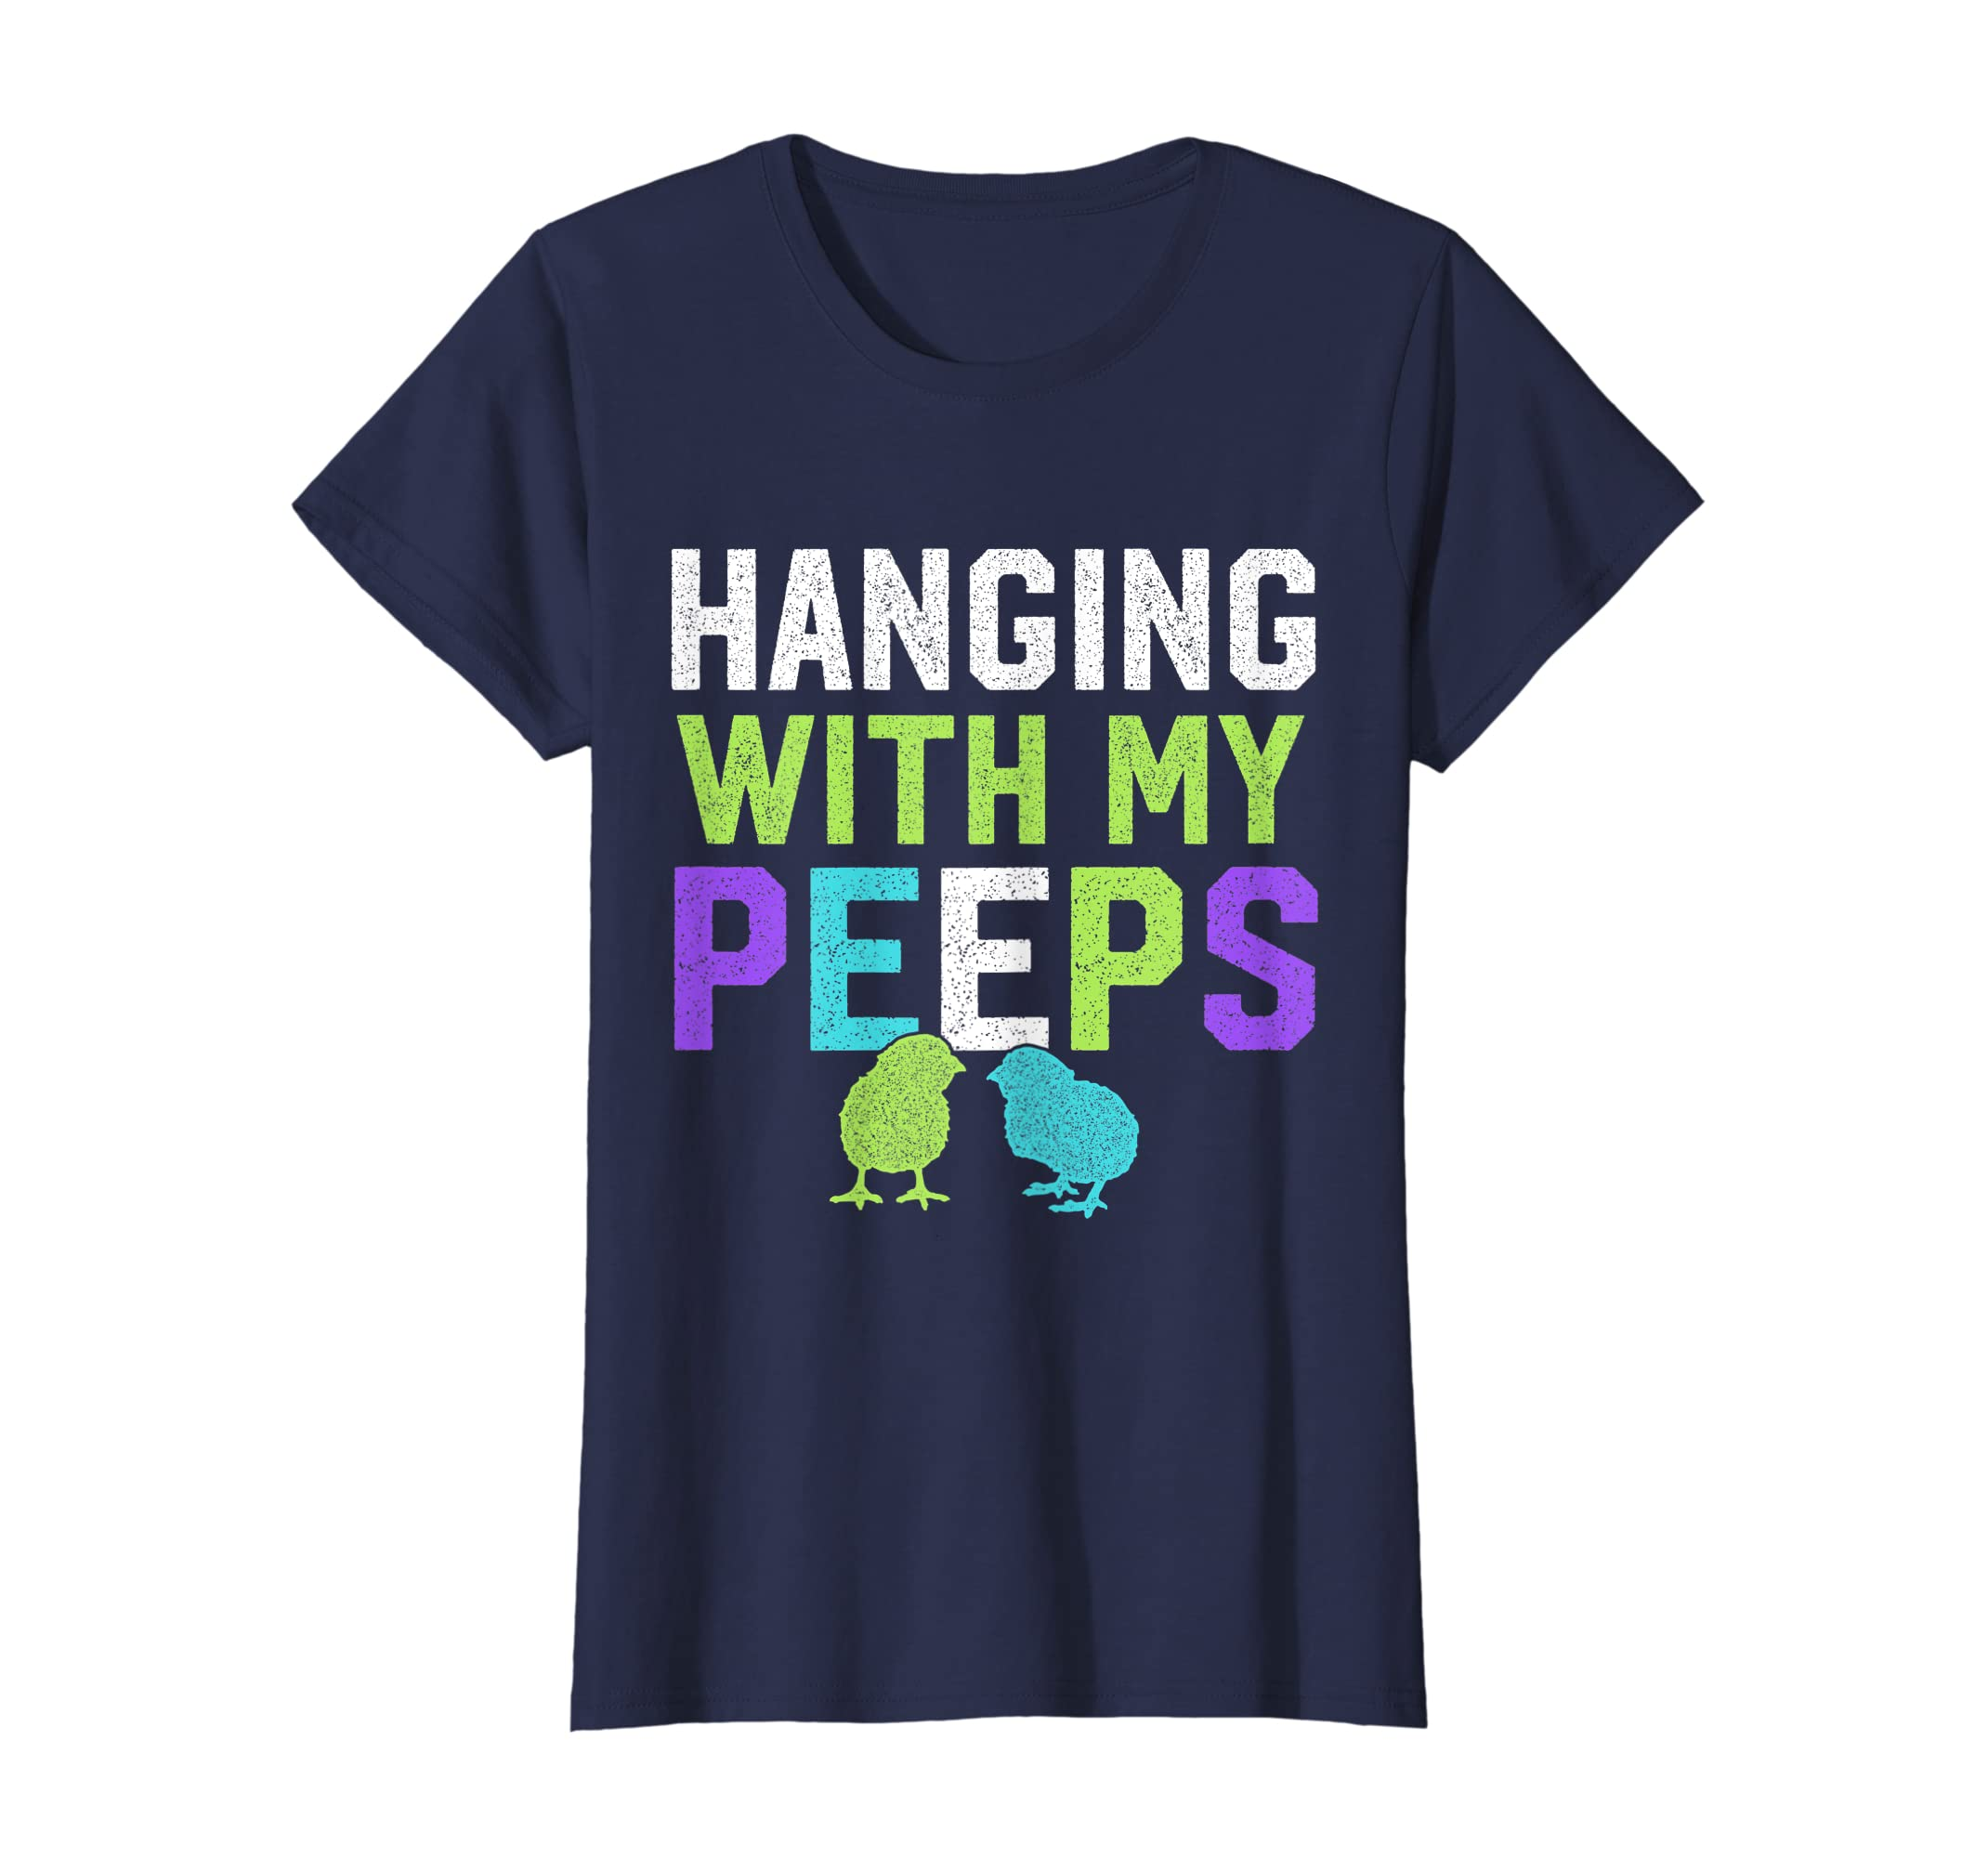 4b0fc451 Amazon.com: Hanging With My Peeps Funny Easter T Shirt: Clothing